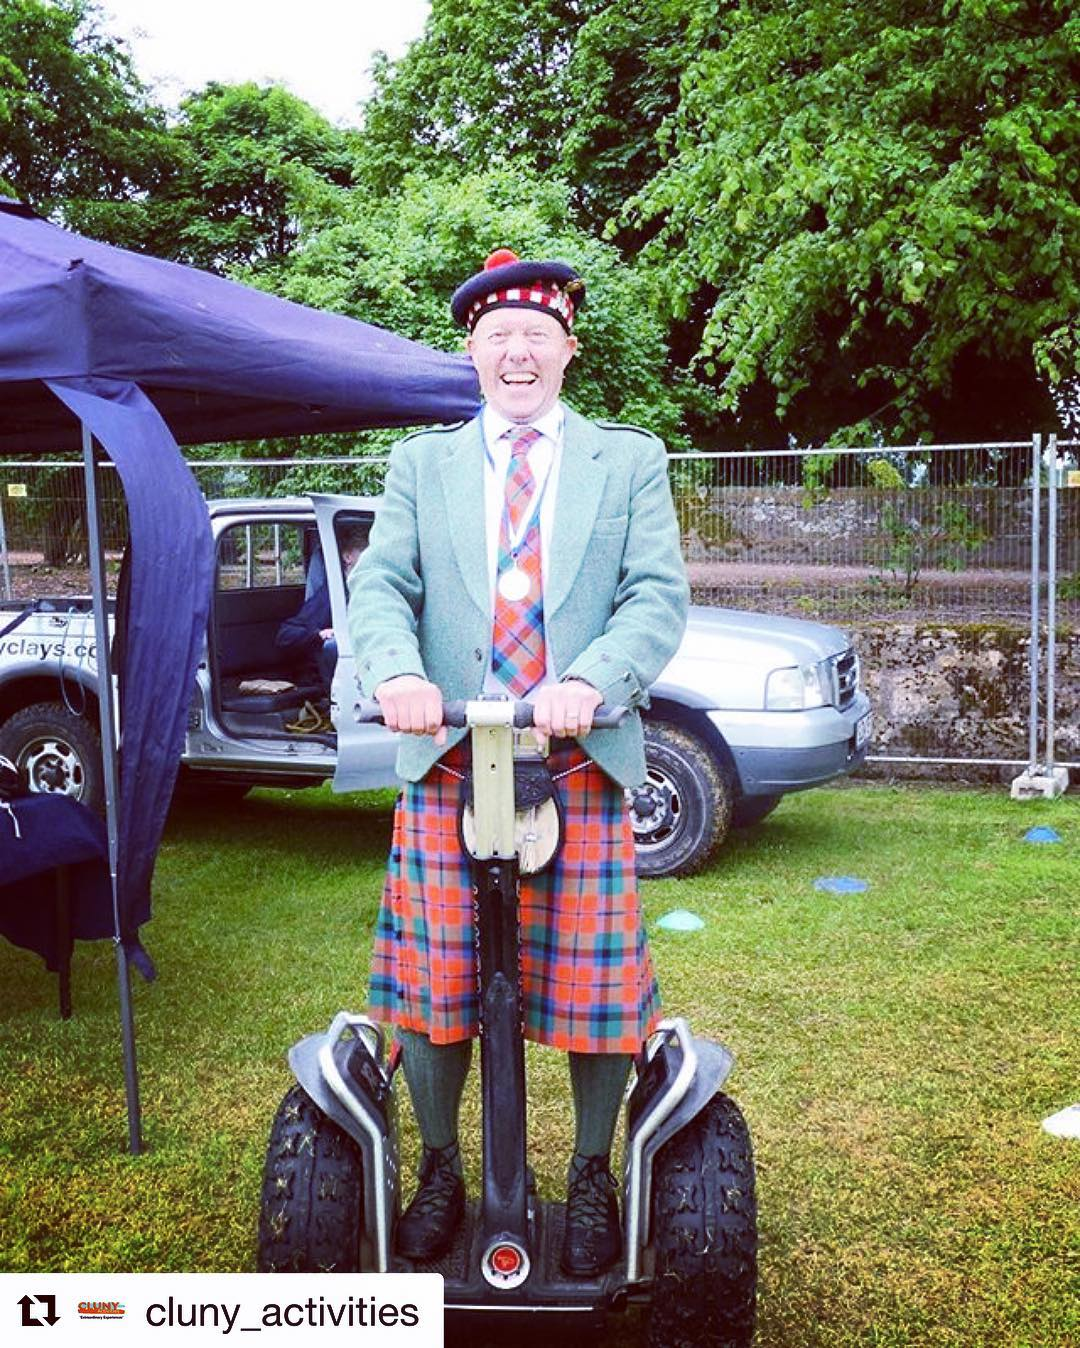 Seems to be the appropriate attire for a segway tour. @segwayworldwide encourages costumes and formal attire while segwaying whenever possible . . @cluny_activities ・・・ Chieftain Alan Hendry showing off his skills at yesterday's Cupar Highland Games!